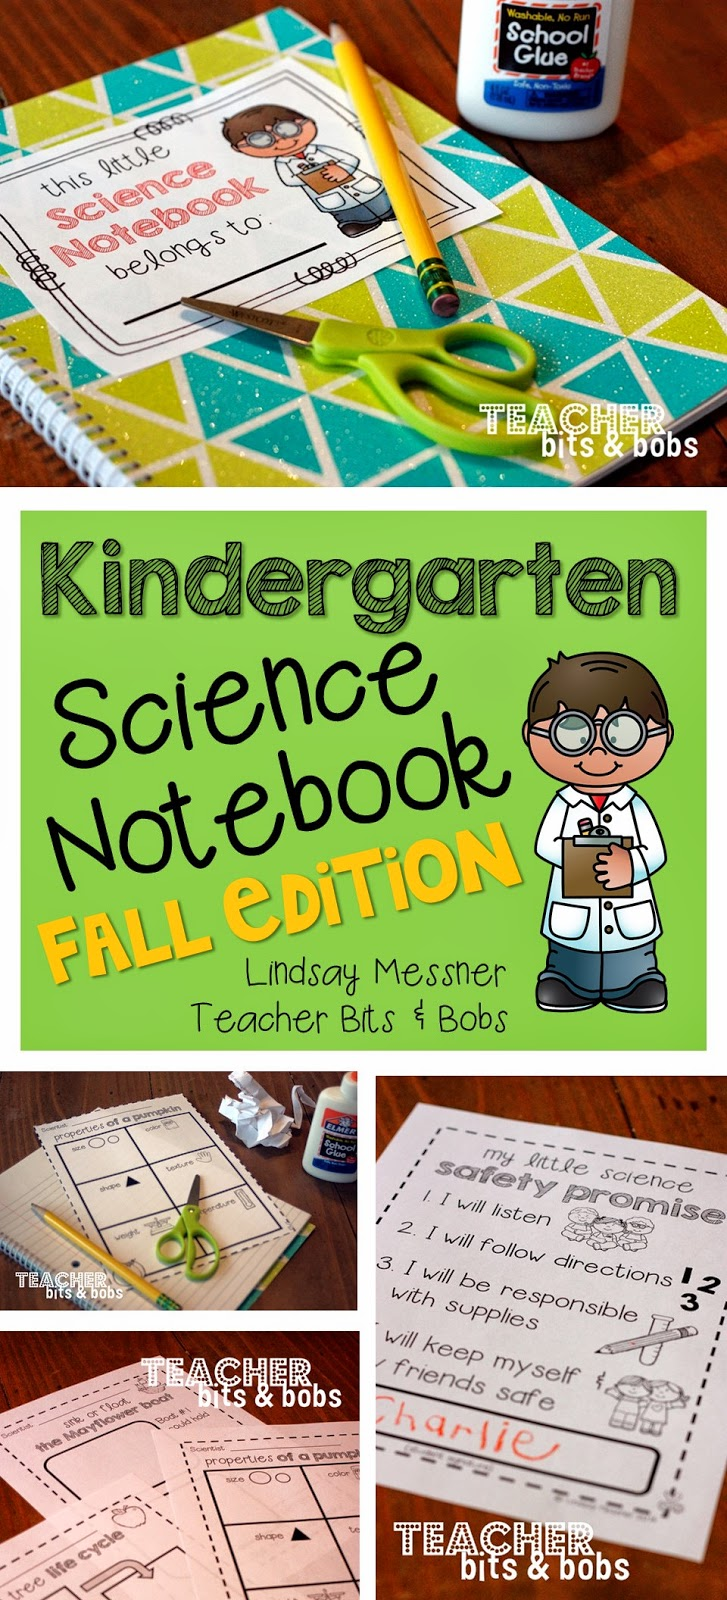 http://www.teacherspayteachers.com/Product/Kindergarten-Science-Notebook-Fall-Edition-1367269